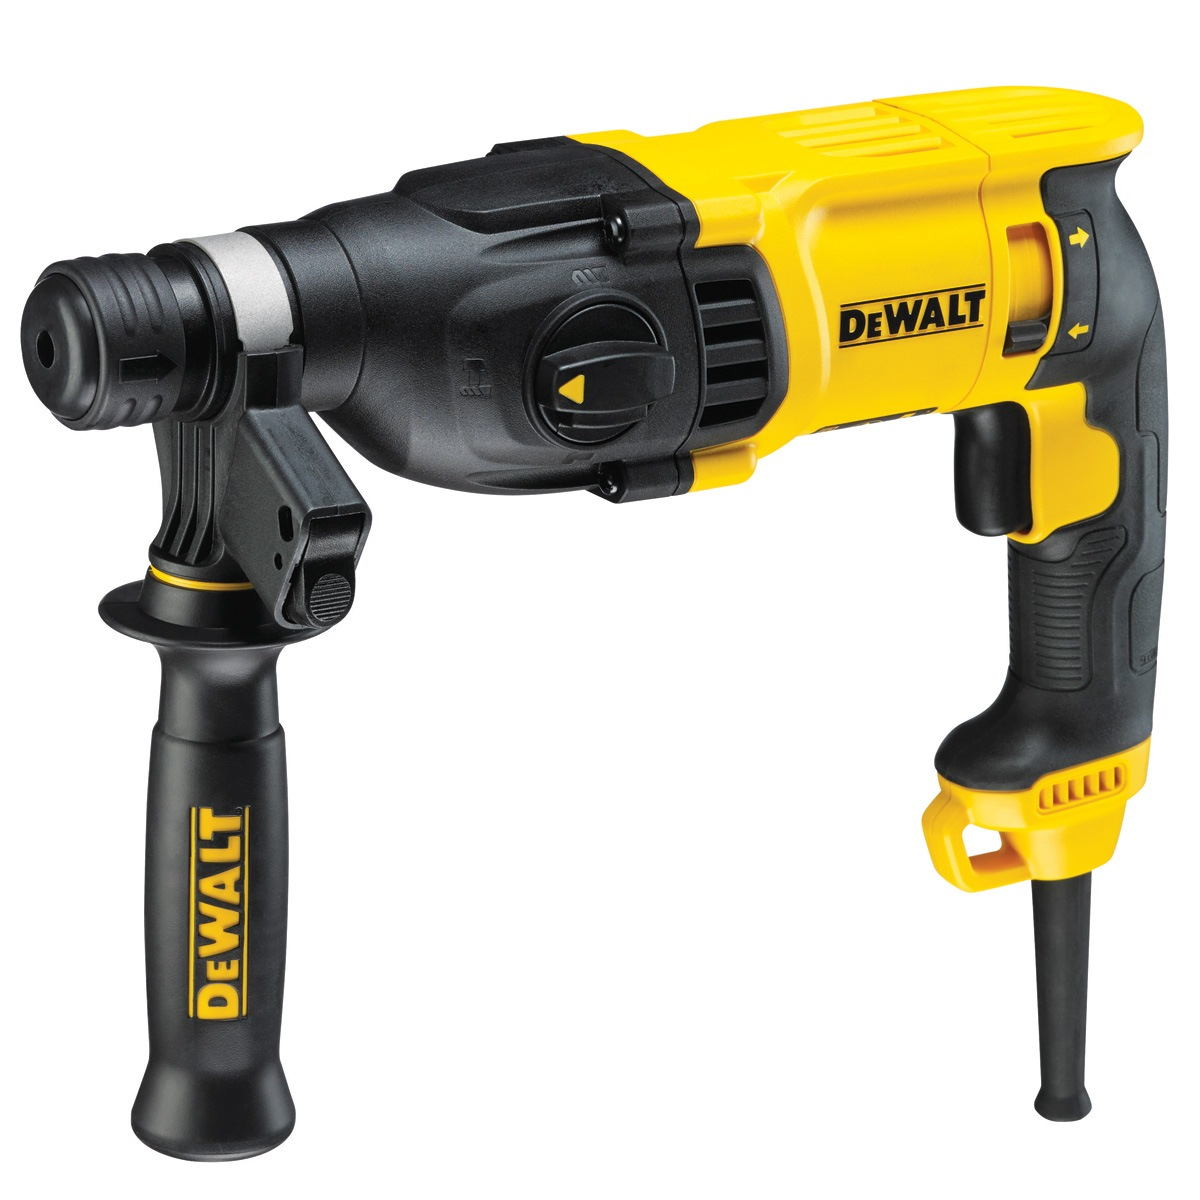 DEWALT 2 MODE ROTARY HAMMER DRILL SDS+ 26MM D25132K